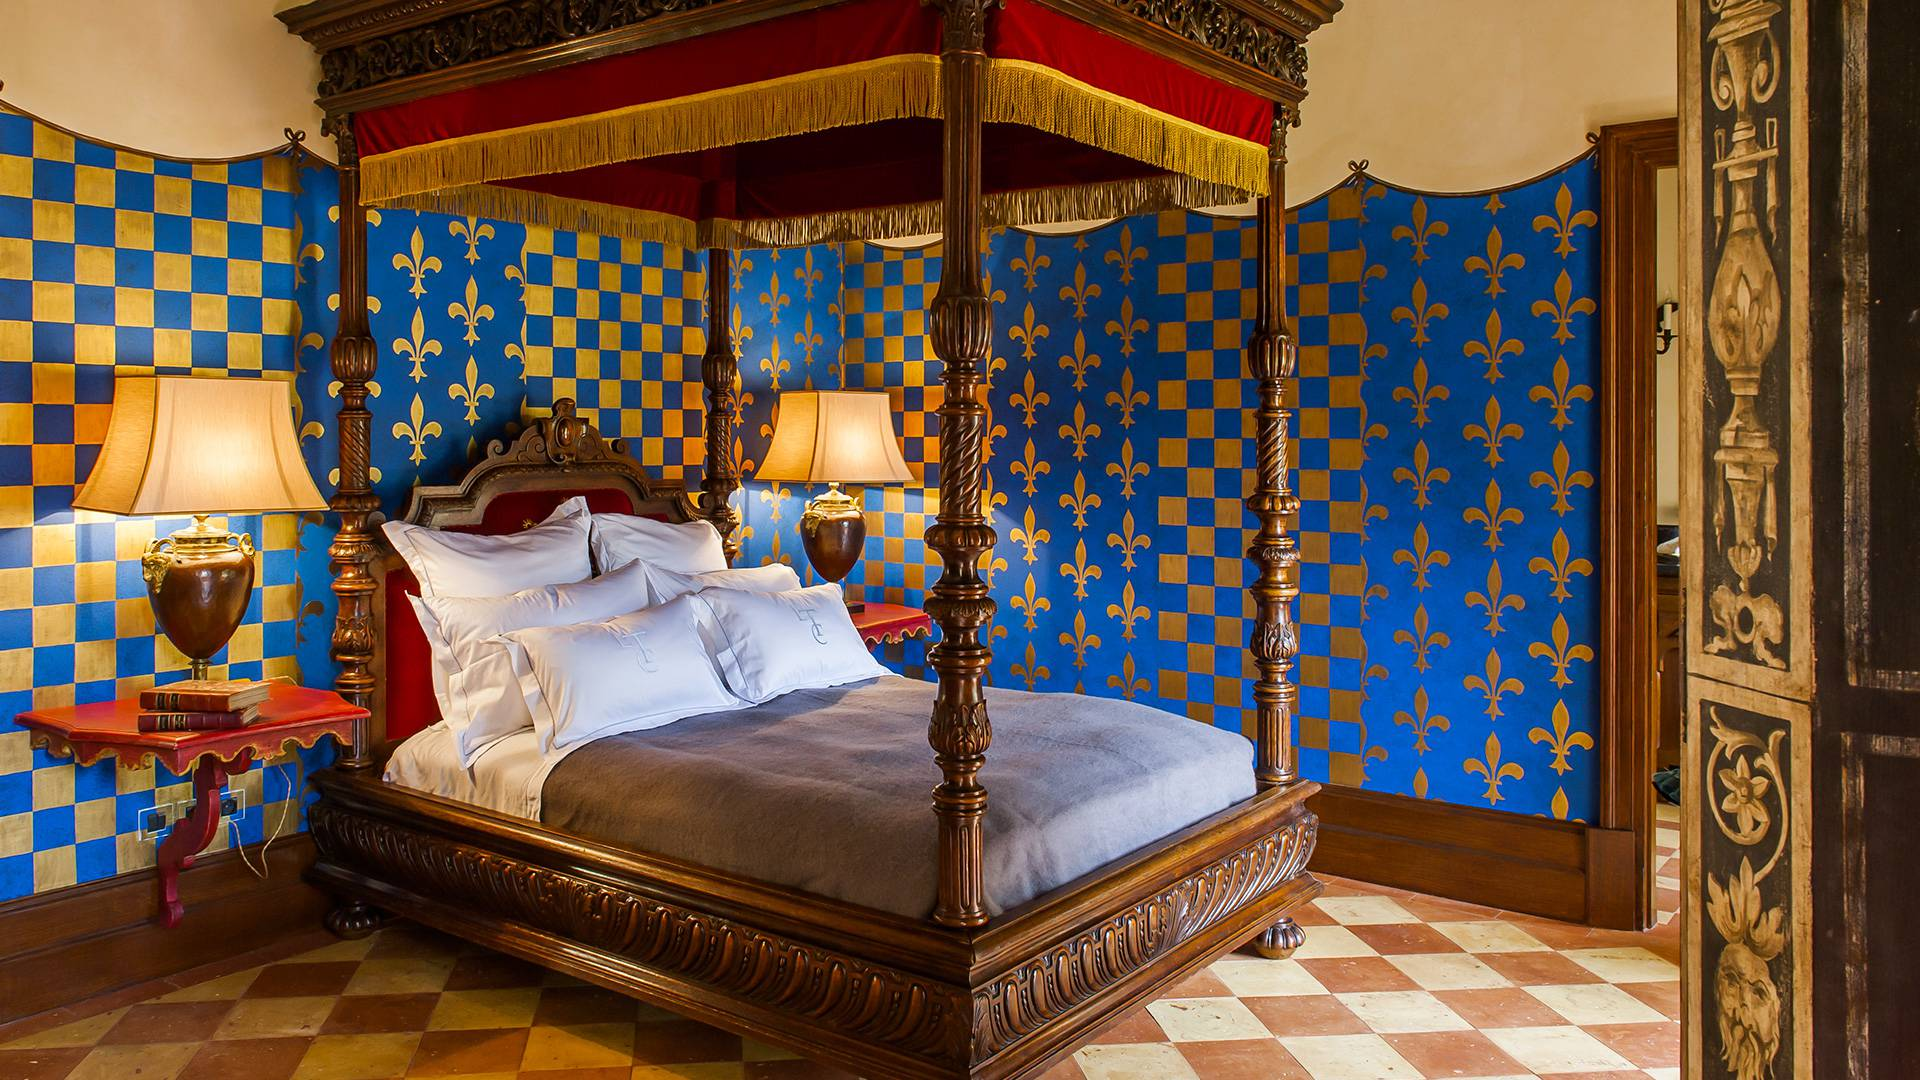 Chambre d hote Medoc